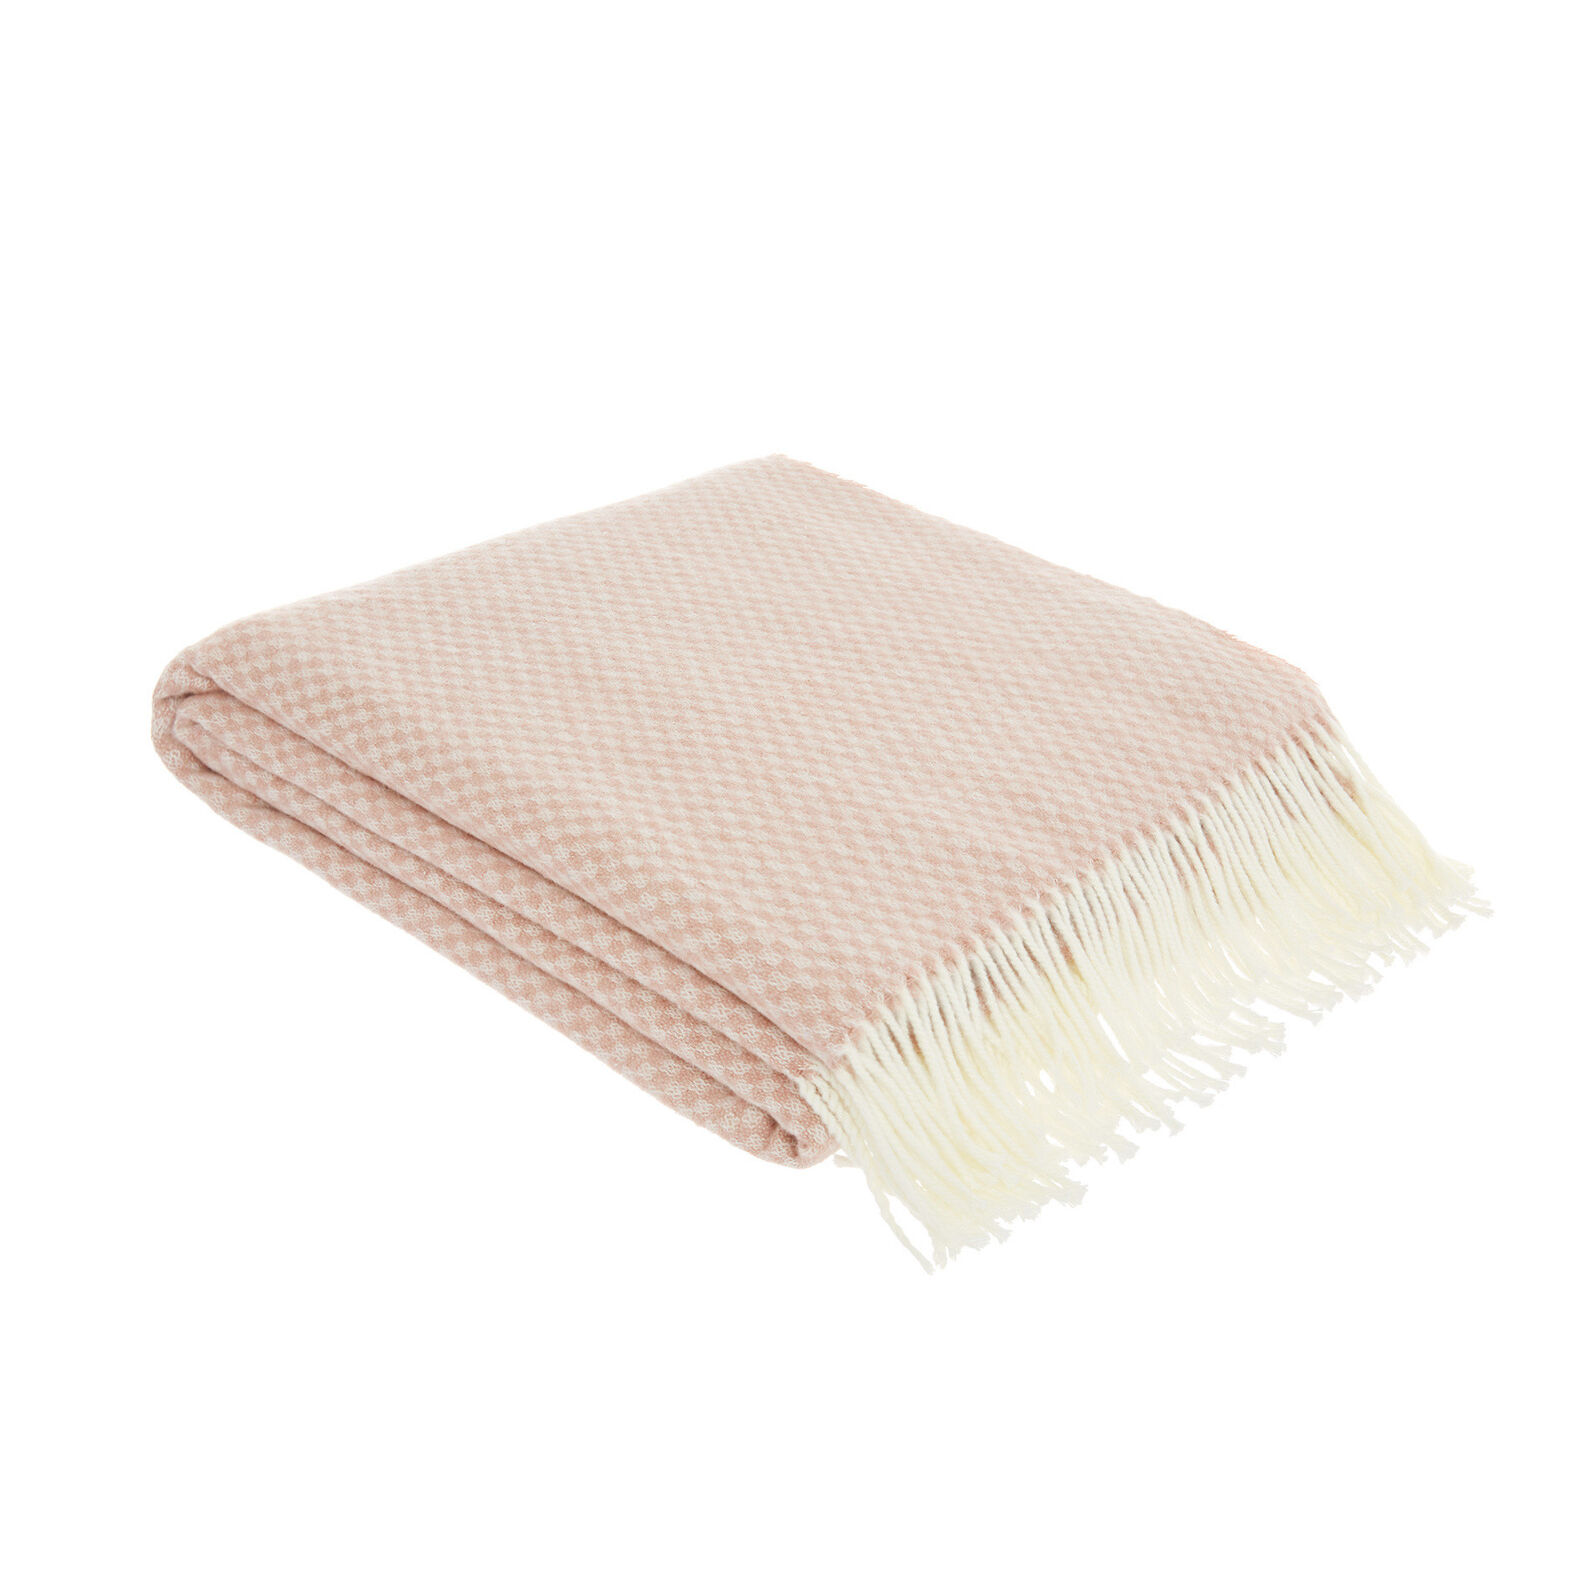 Cotton blend throw with geometric motif